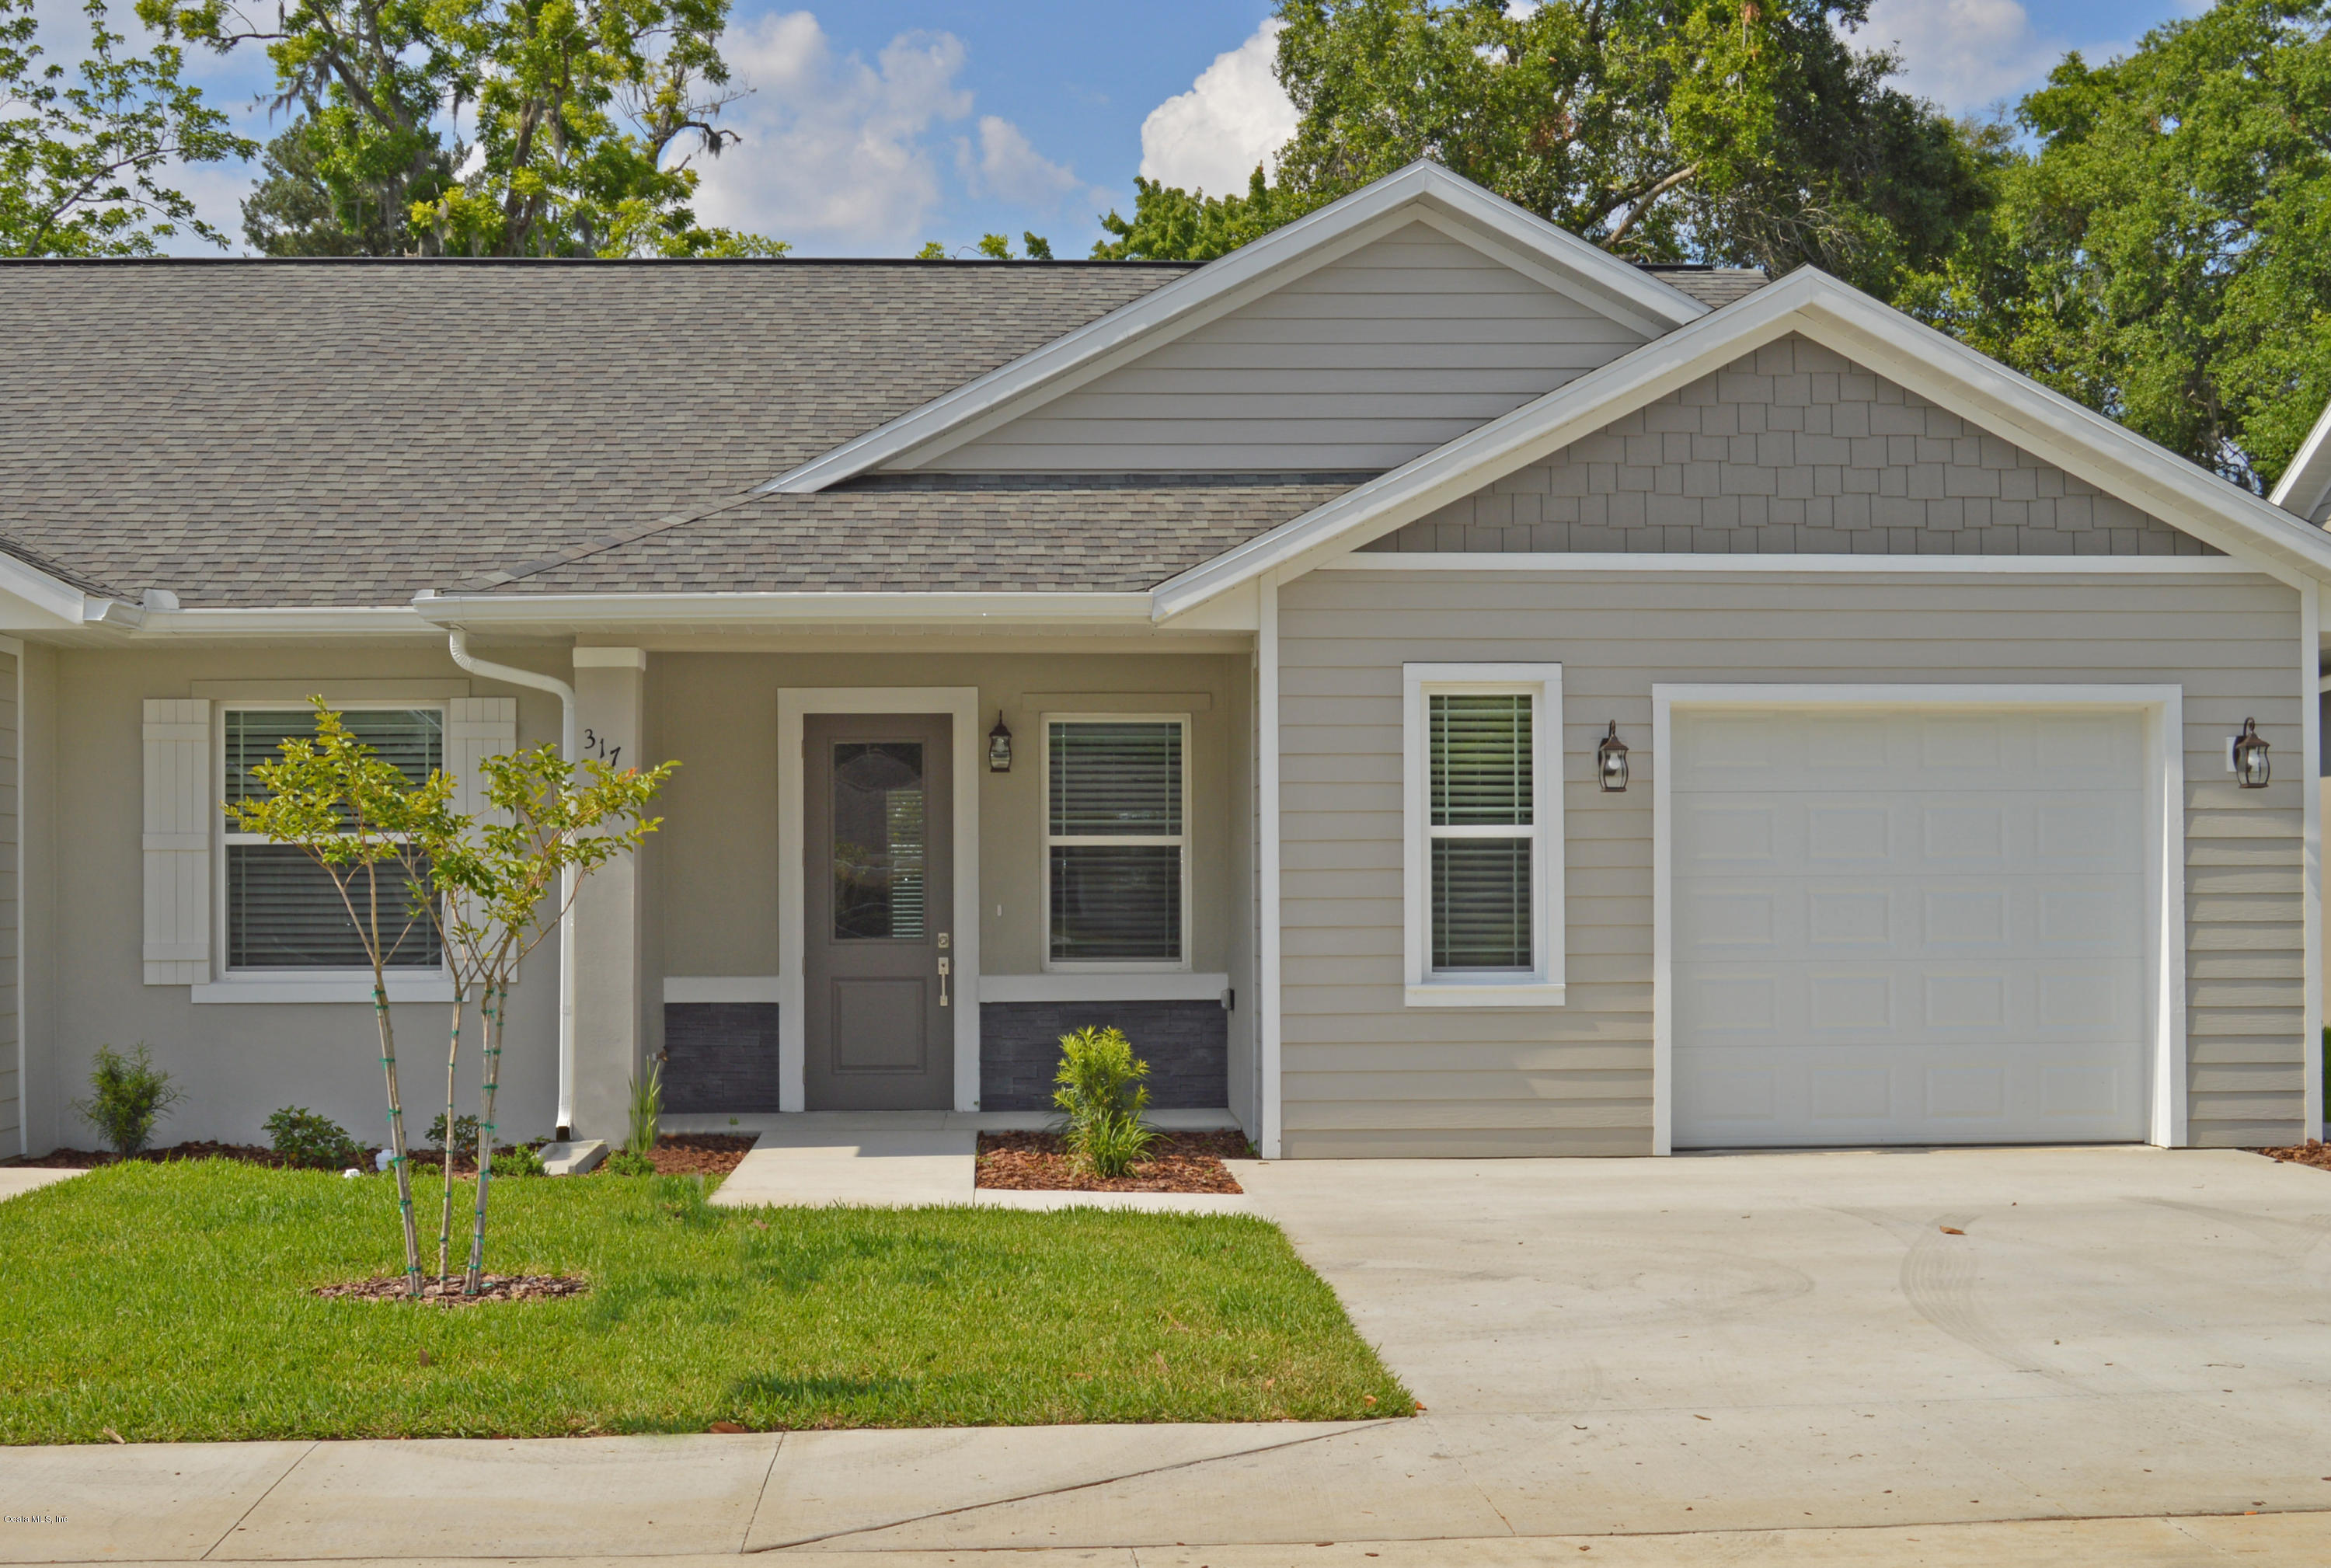 329 SE 10TH STREET, OCALA, FL 34471